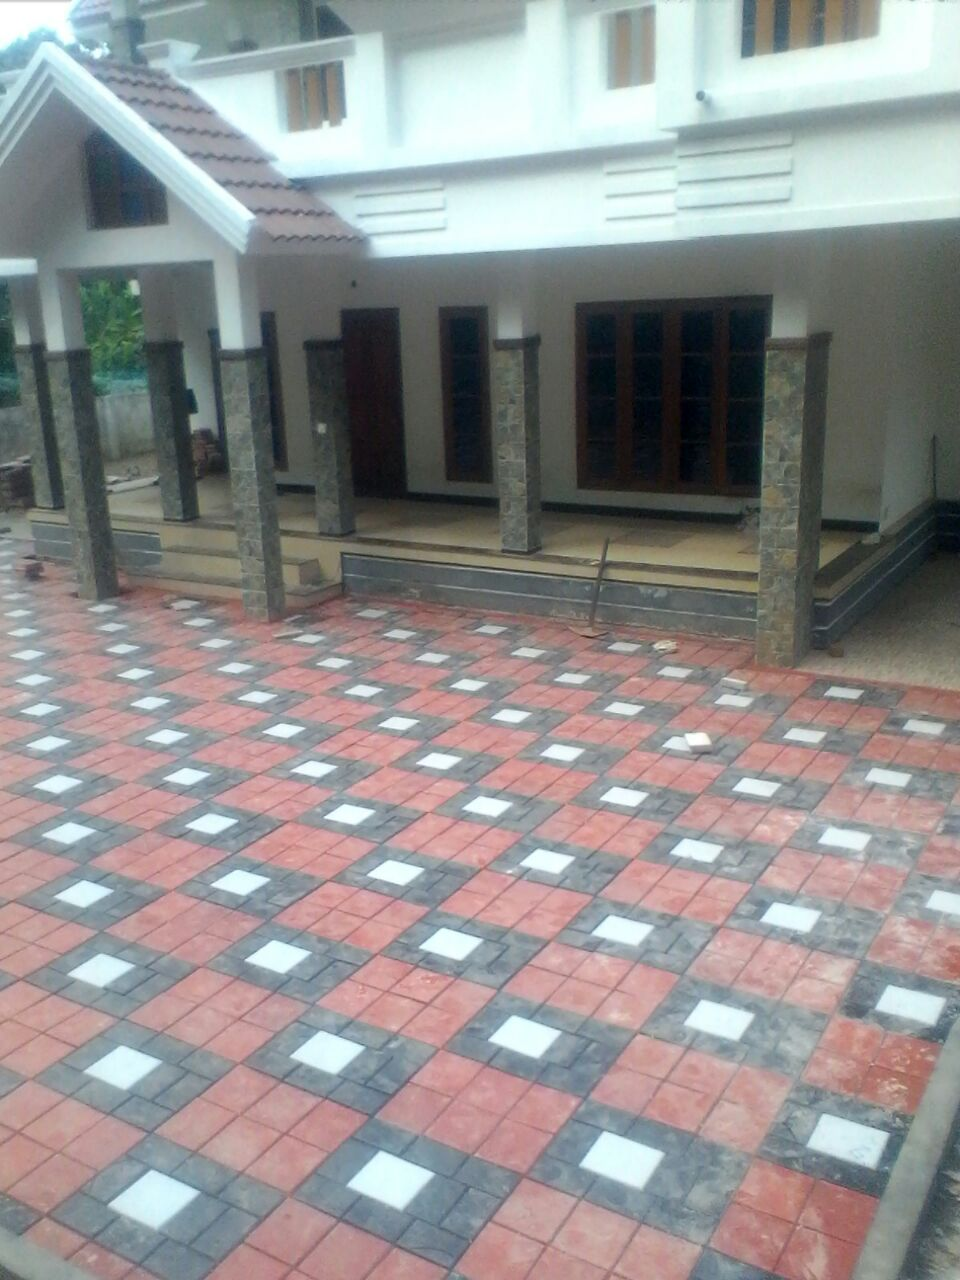 High Tech Paving Tiles Porch Cement Interlock Manufacturing Marketing In Kottayam Mundakayam Paingana Kerala